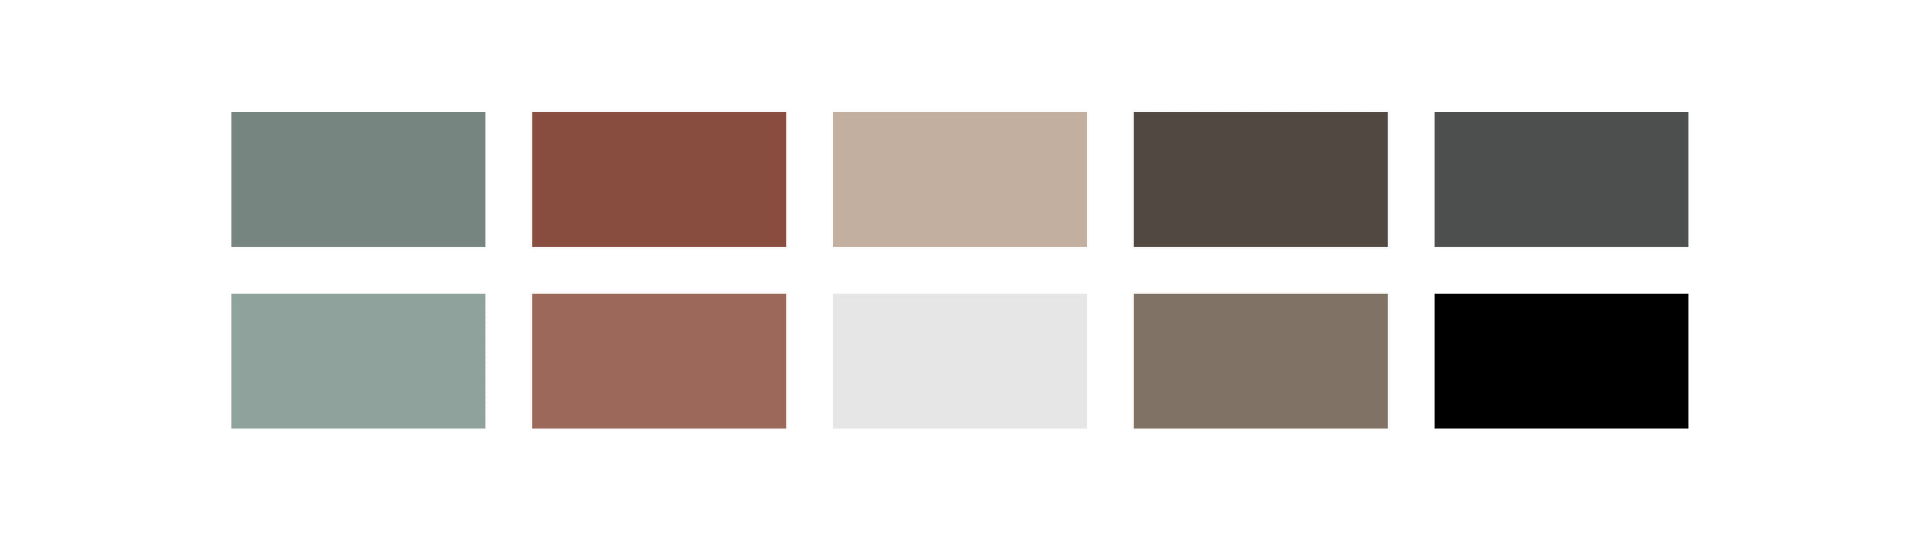 Home Brewed Photography color palette